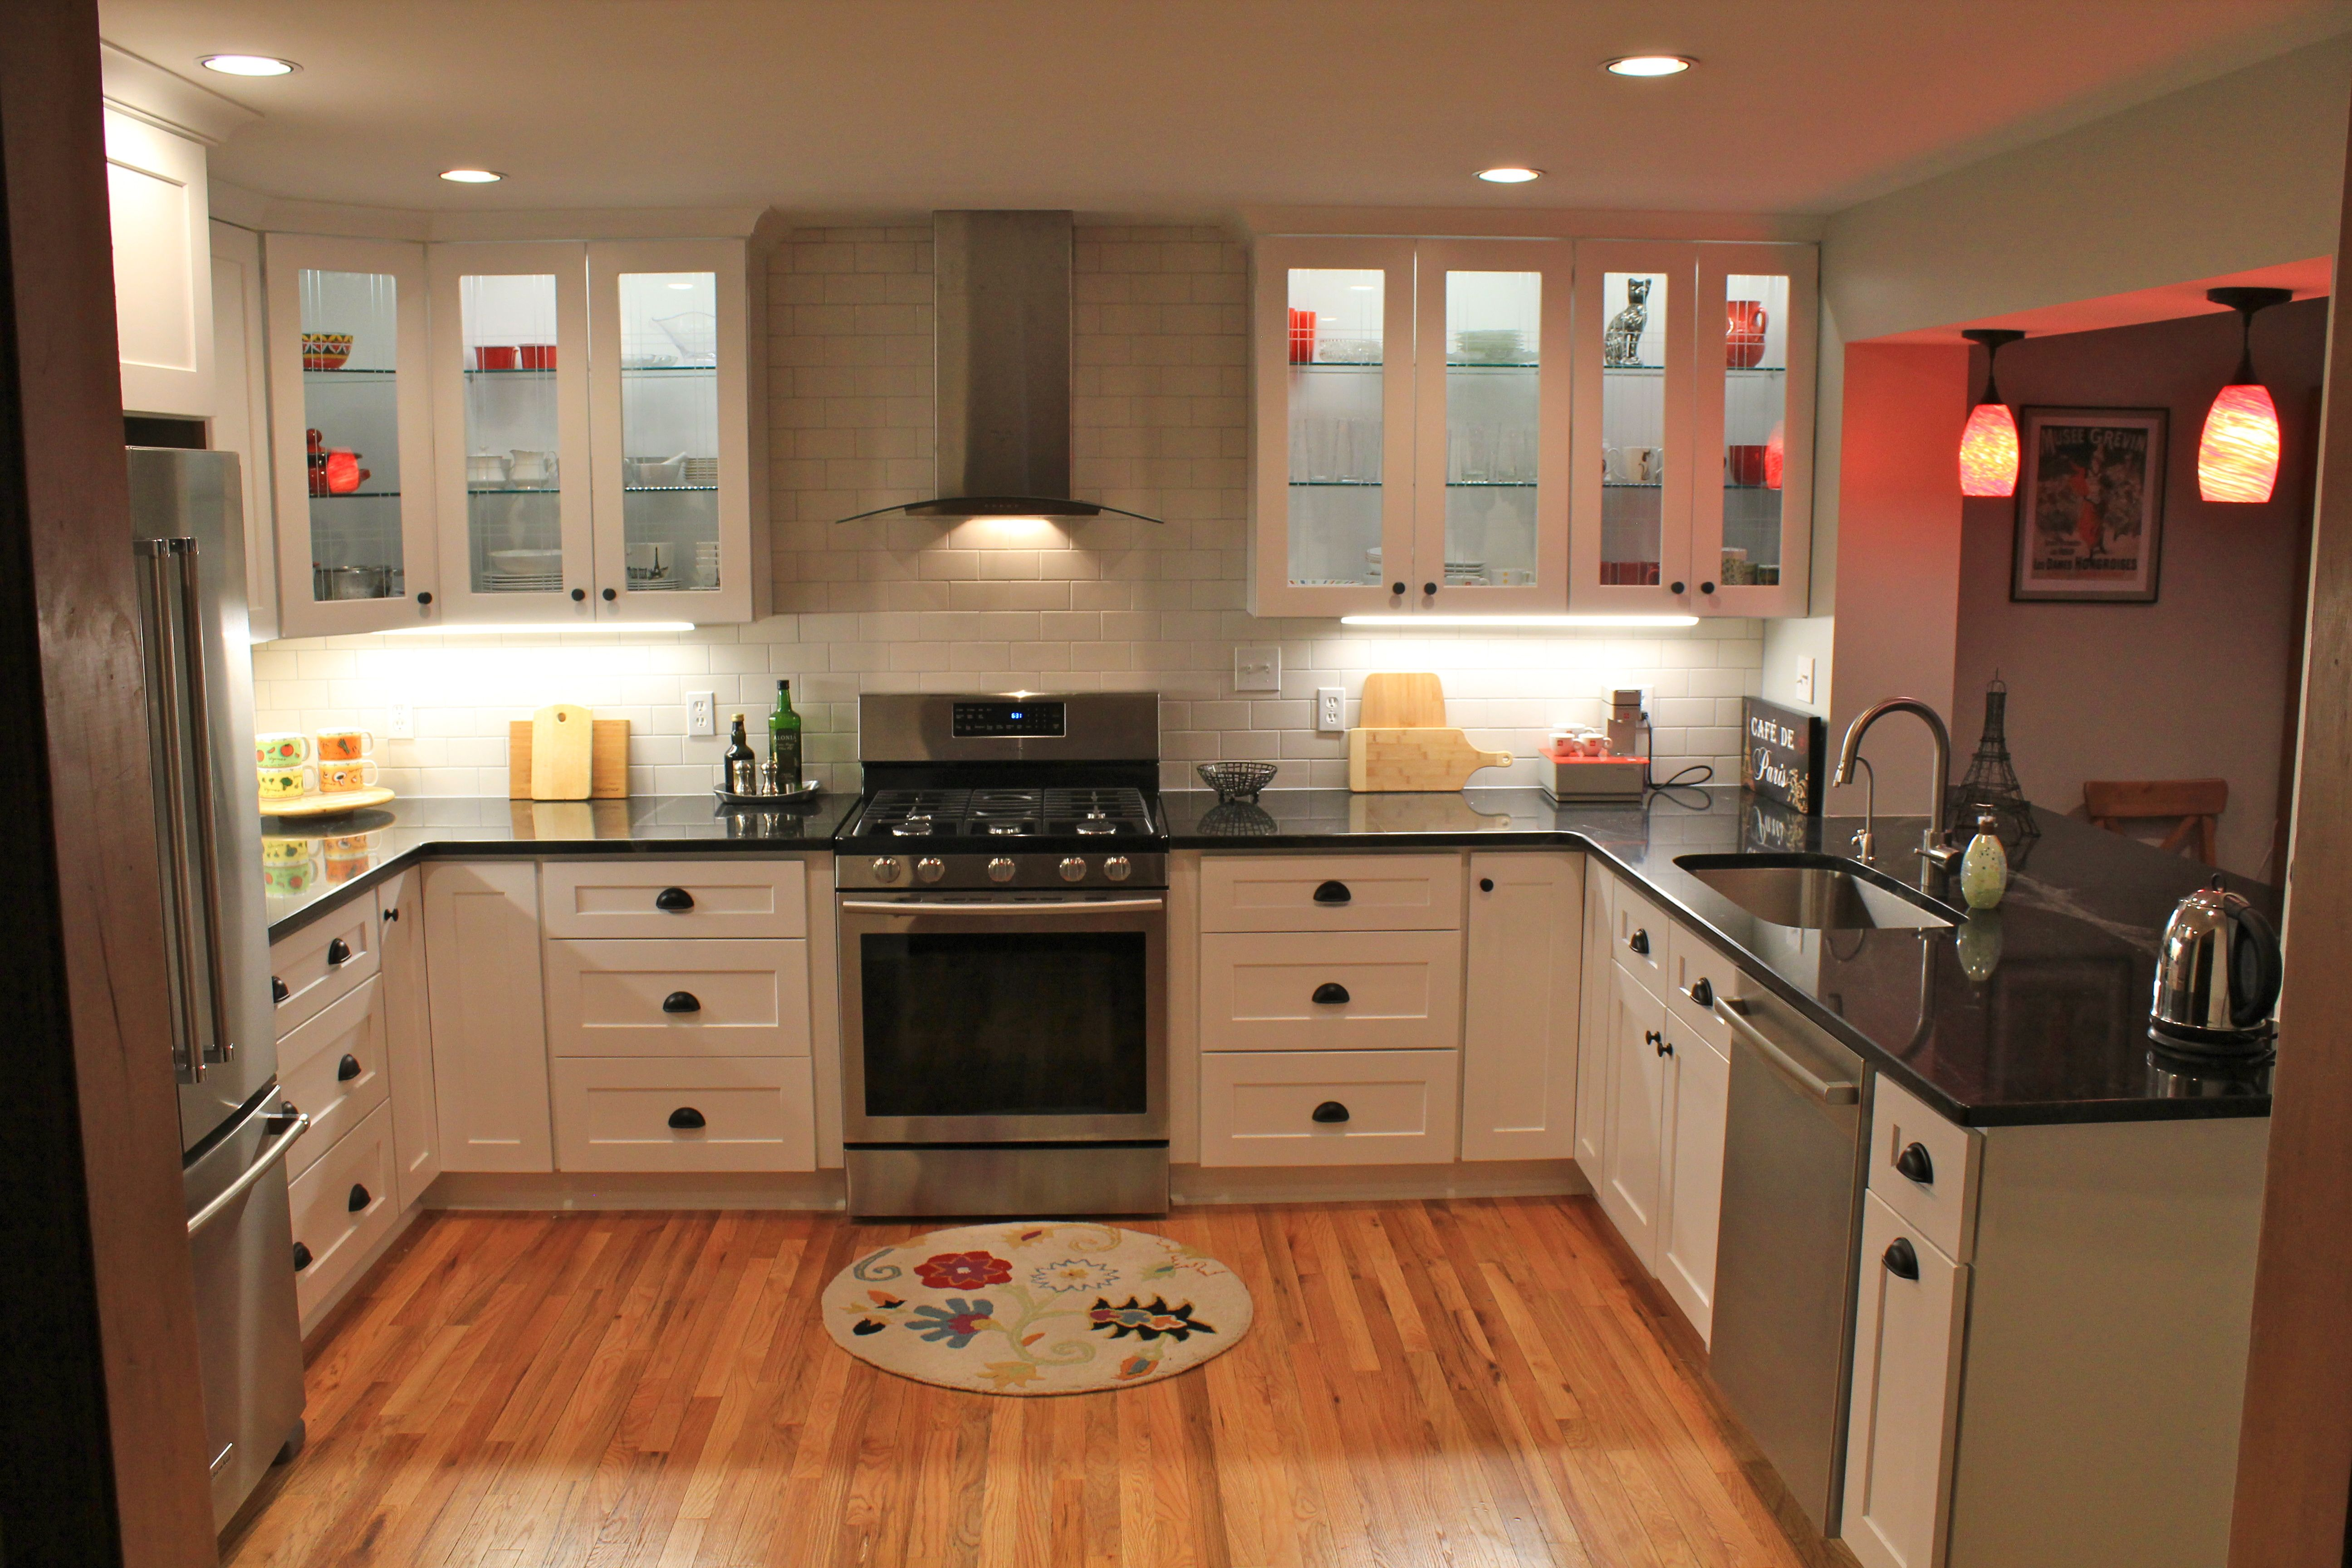 The Latest Review And Pictures From Our Customer I Am Very Pleased With My New Kitchen Cabinets Kitchen Cabinets New Kitchen Cabinets Kitchen Cabinet Design